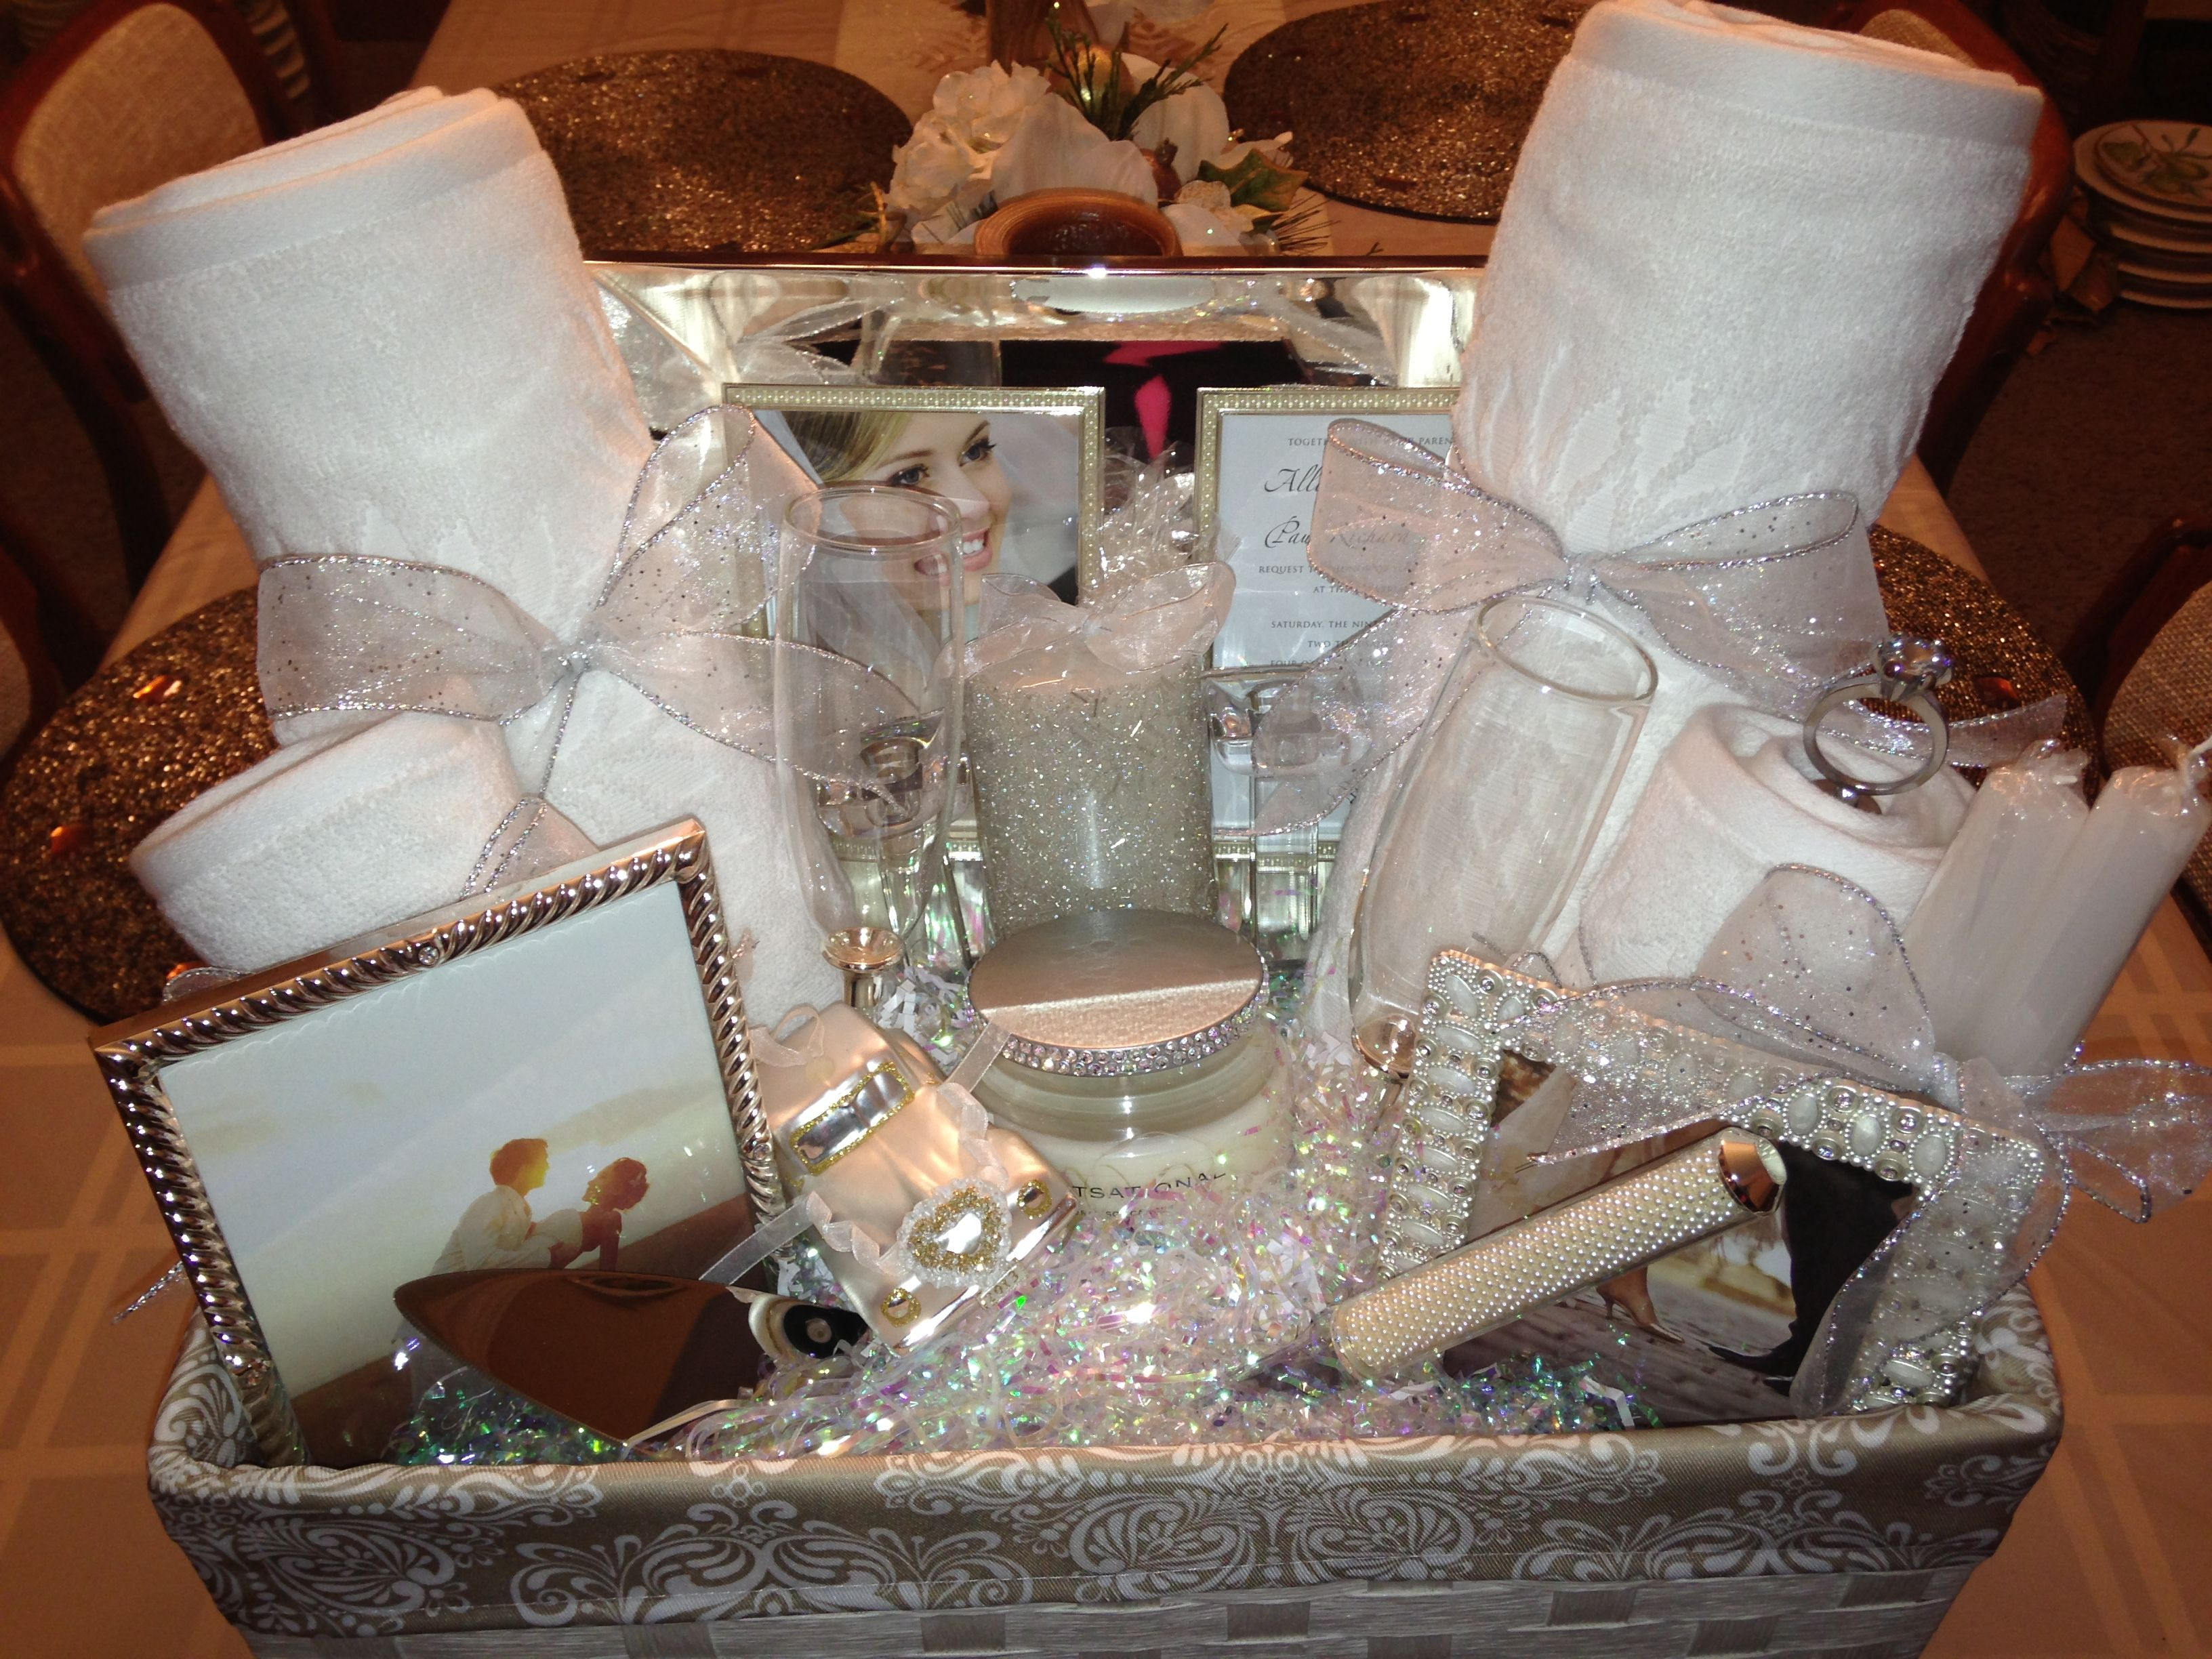 gifts bridal gifts basket ideas gift baskets theme baskets cool ideas ...